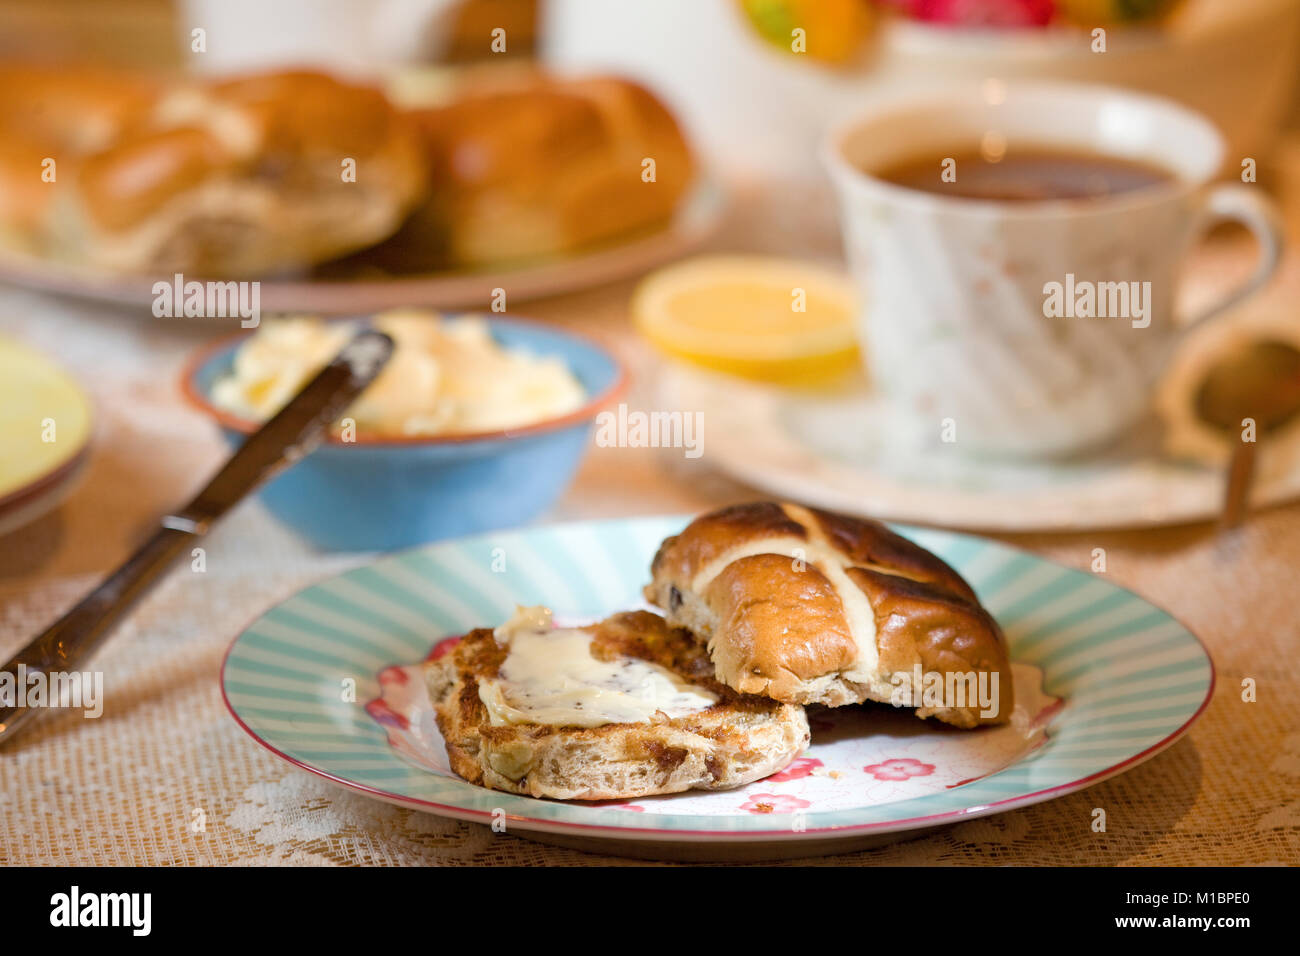 Toasted Hot Cross Bun with melted butter - Stock Image